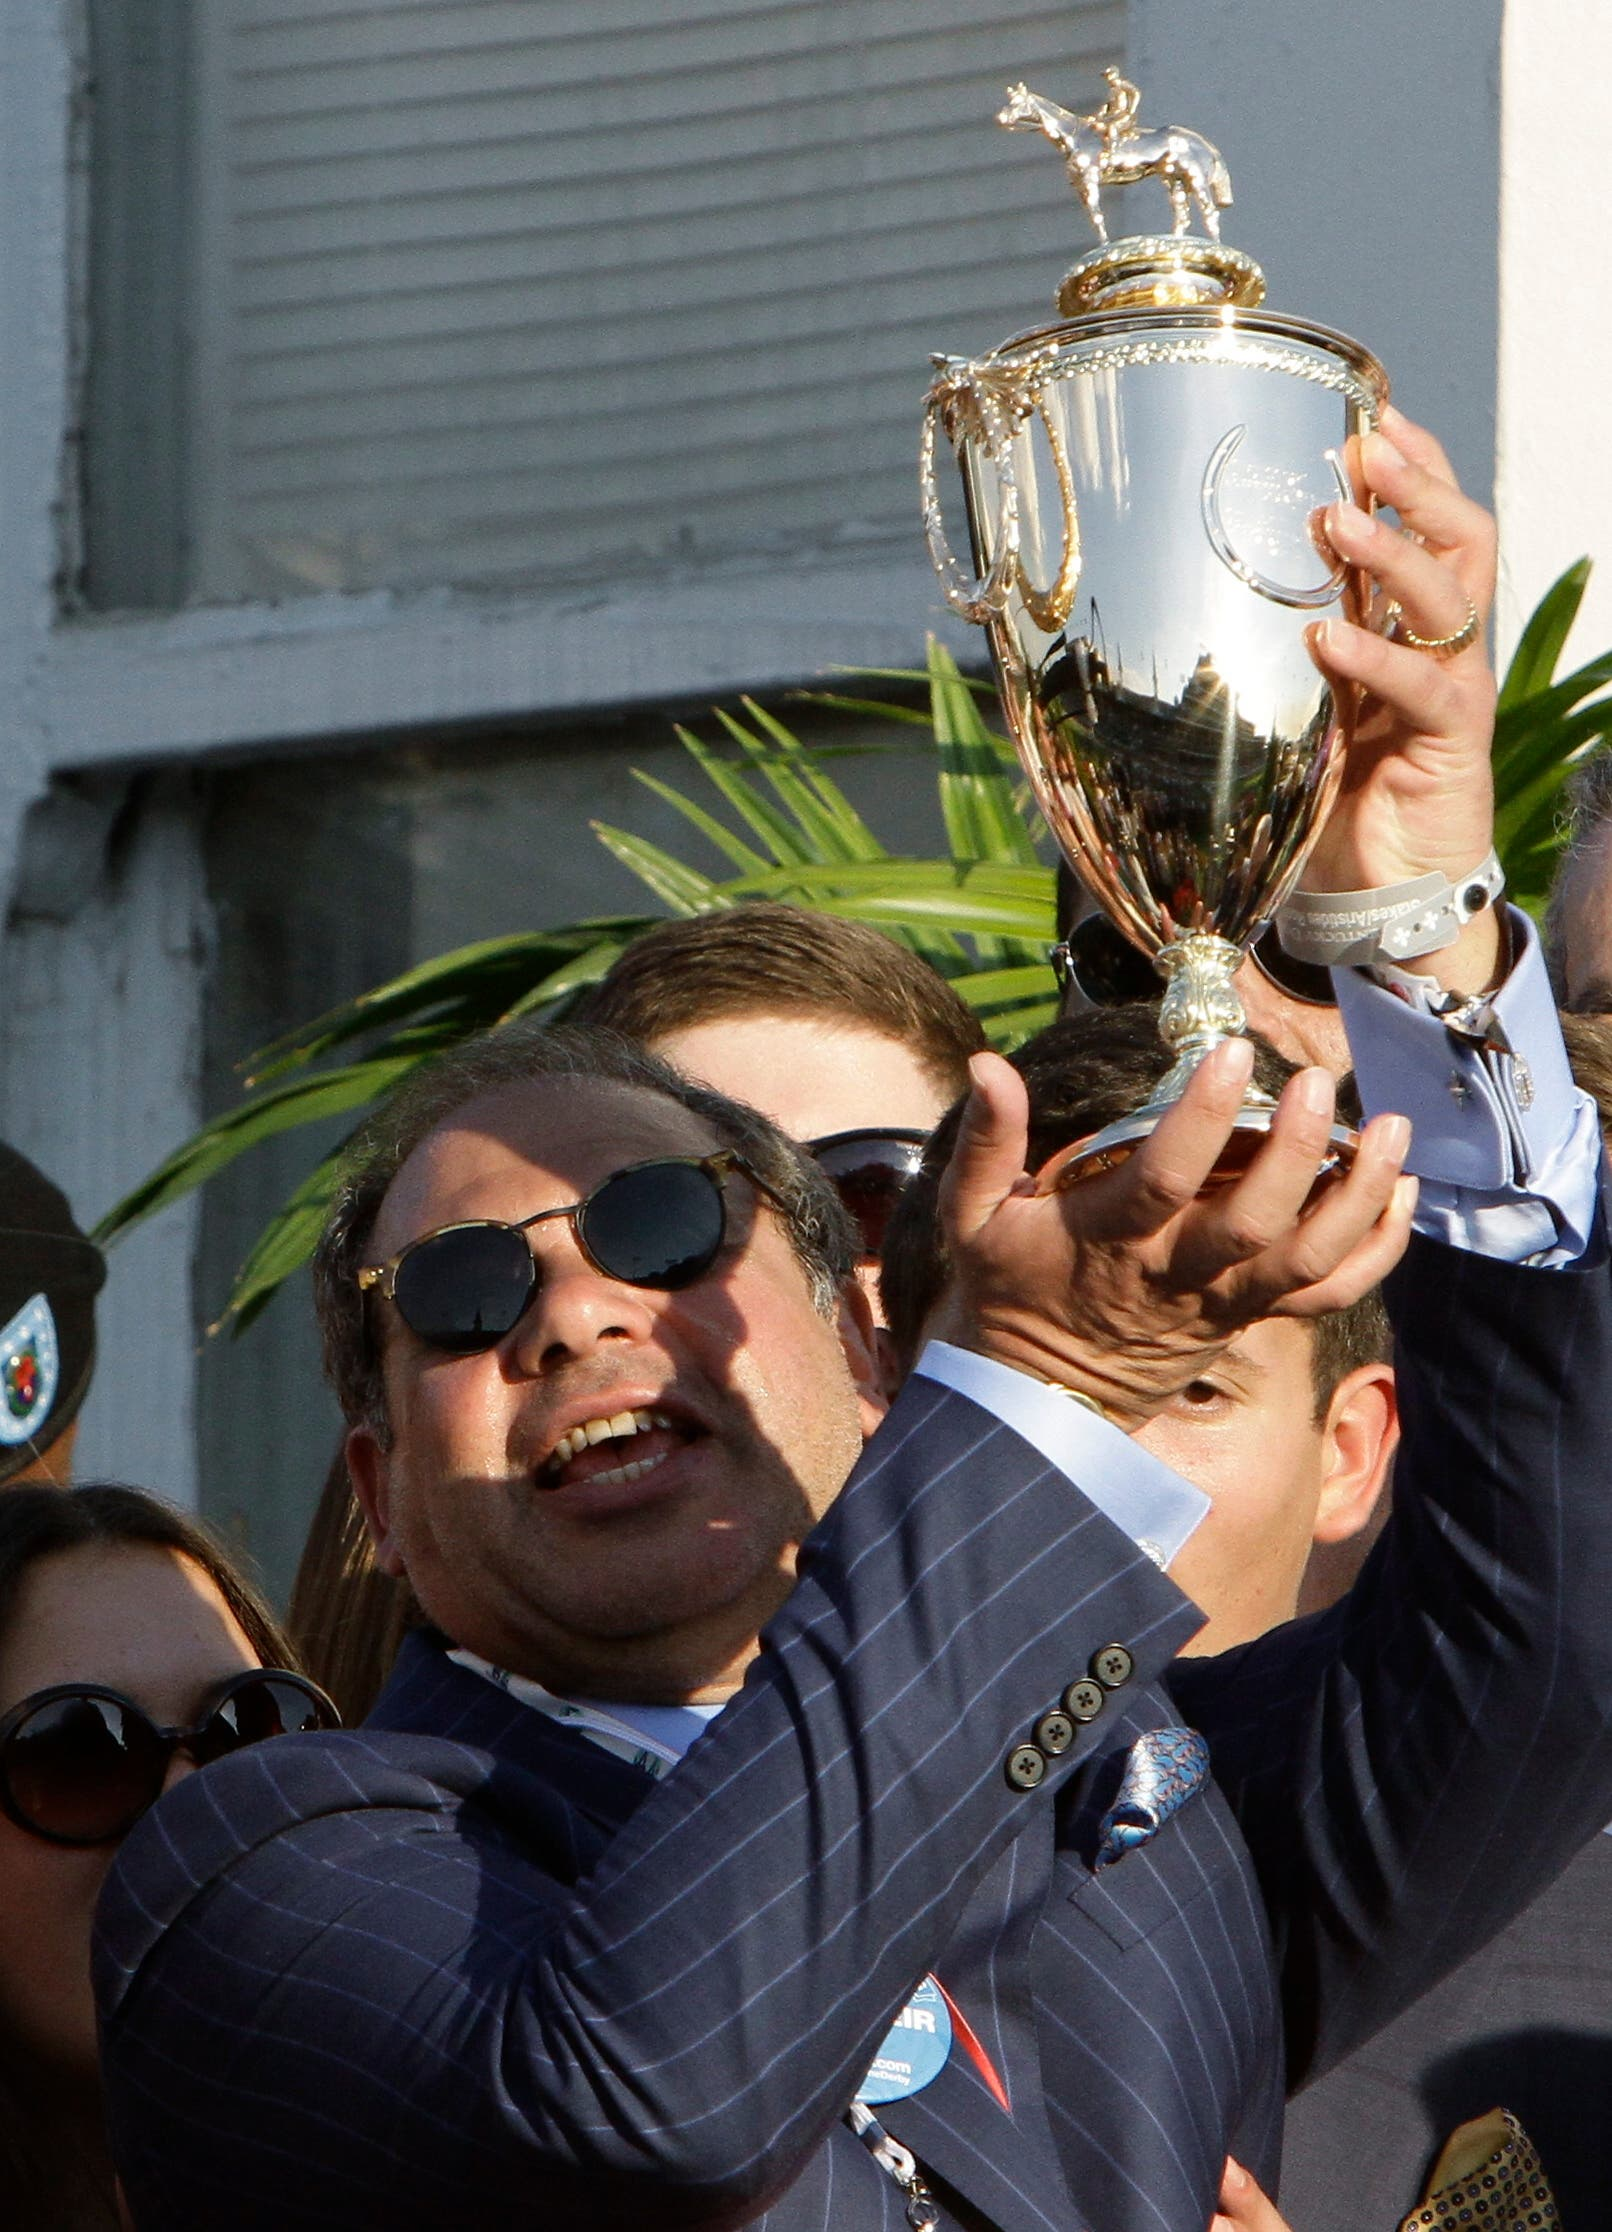 American Pharoah owner Ahmed Zayat holds the trophy after Victor Espinoza rode American Pharoah to victory at the Kentucky Derby horse race at Churchill Downs. (AP)